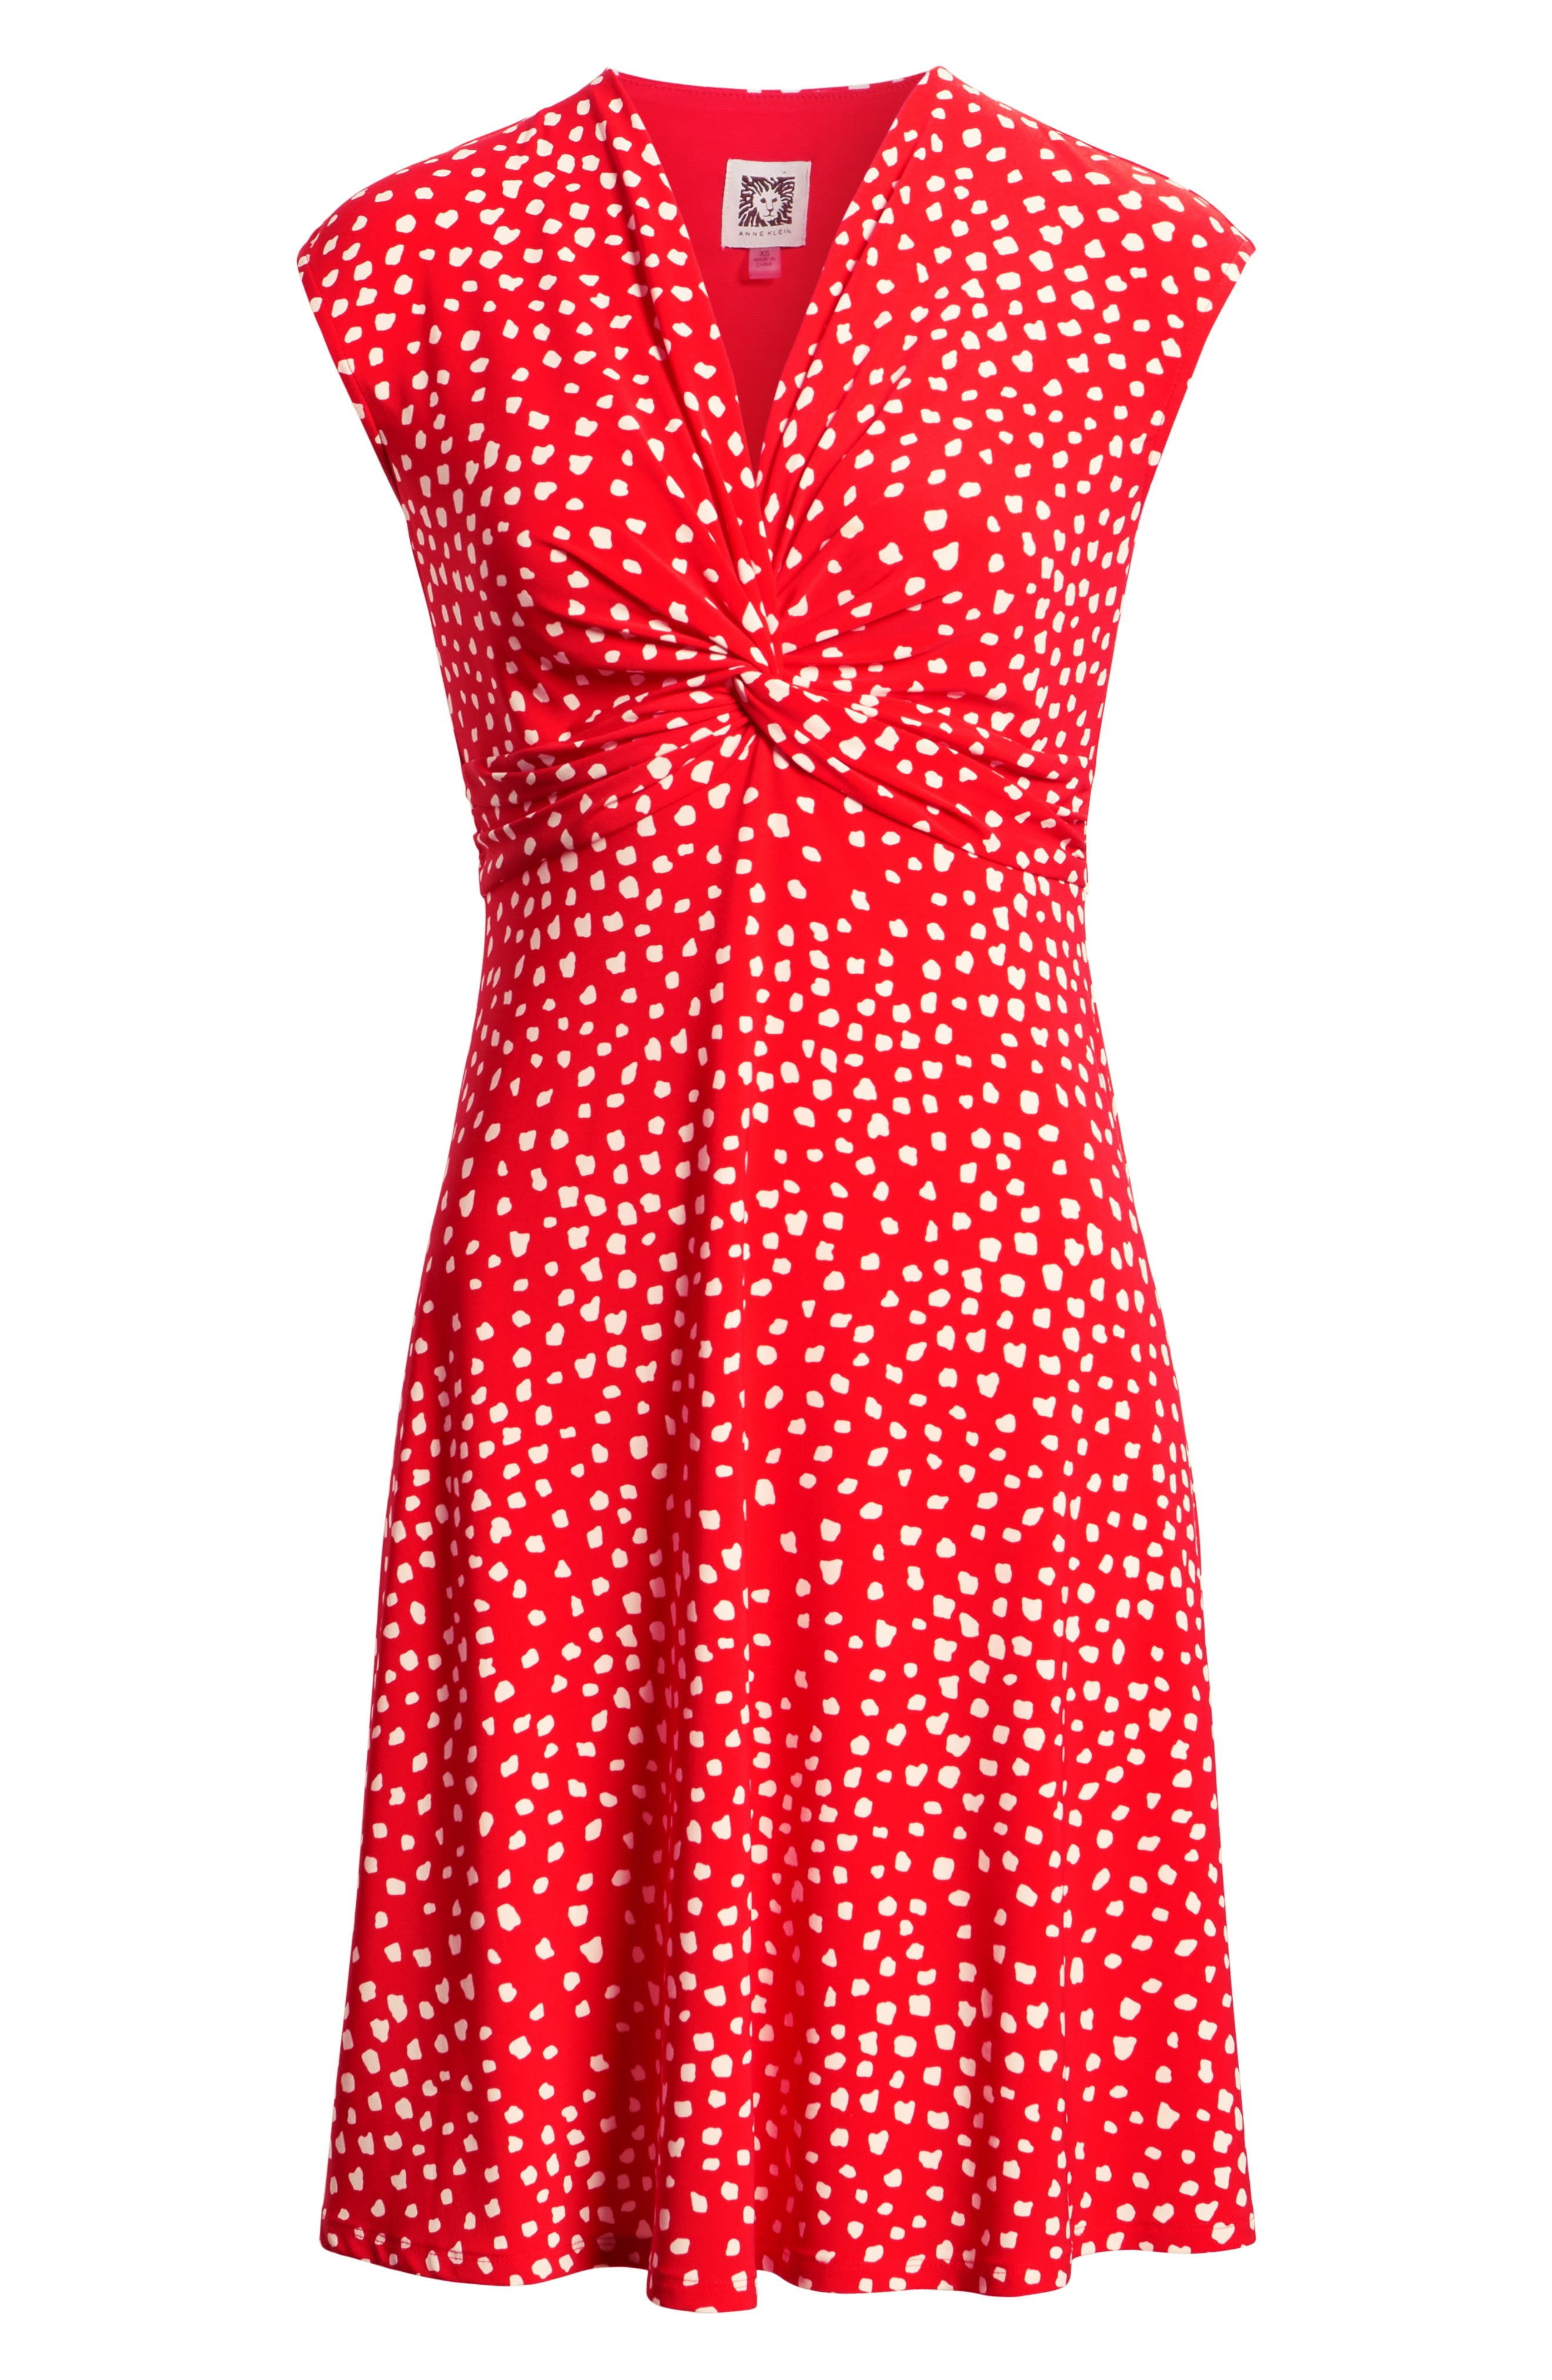 Ceylon Twist Fit and Flare Dress,                             Alternate thumbnail 7, color,                             Tomato/ Parchment Combo